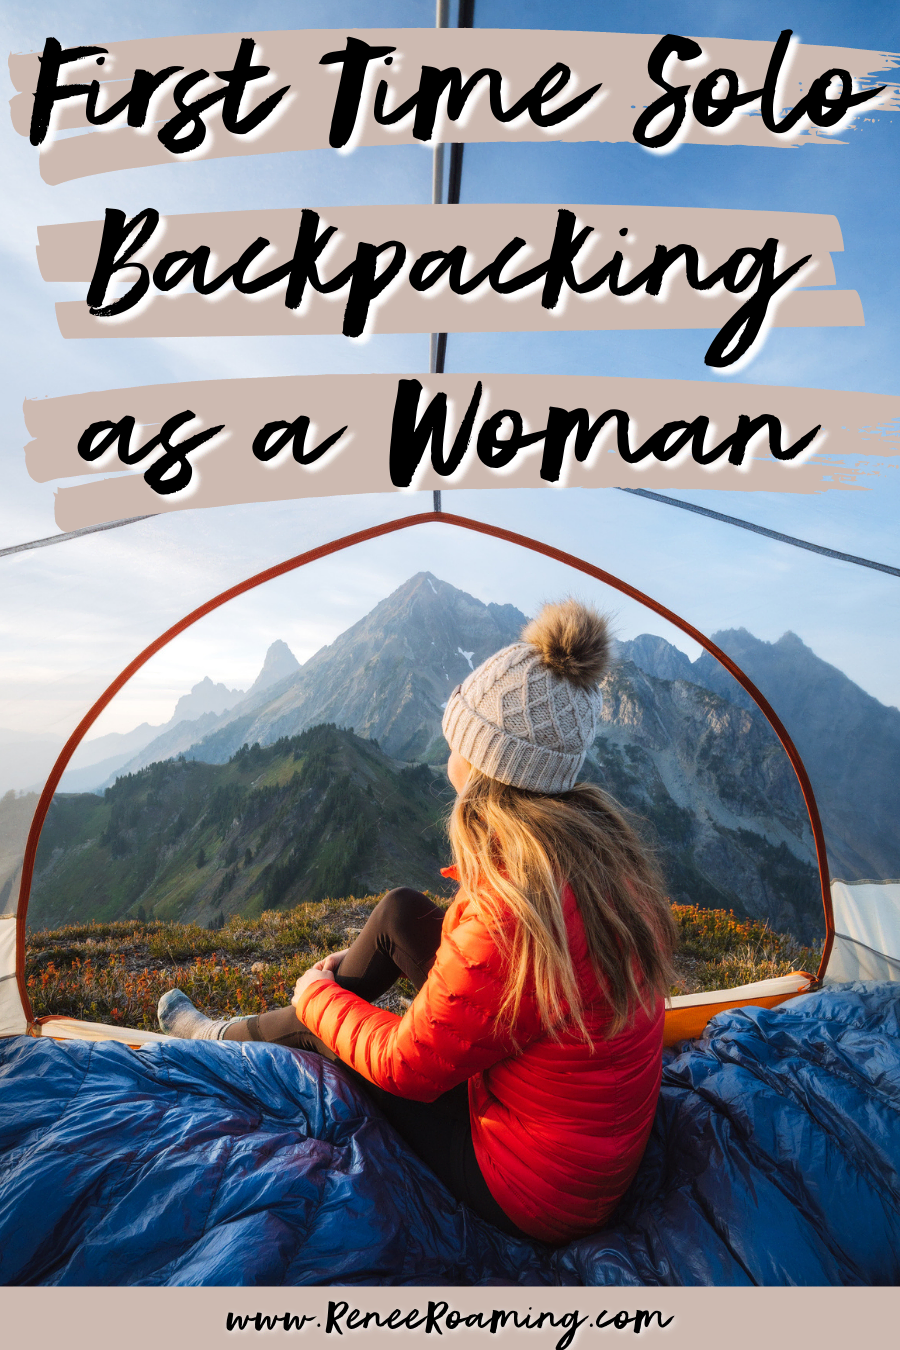 First Time Solo Backpacking as a Woman